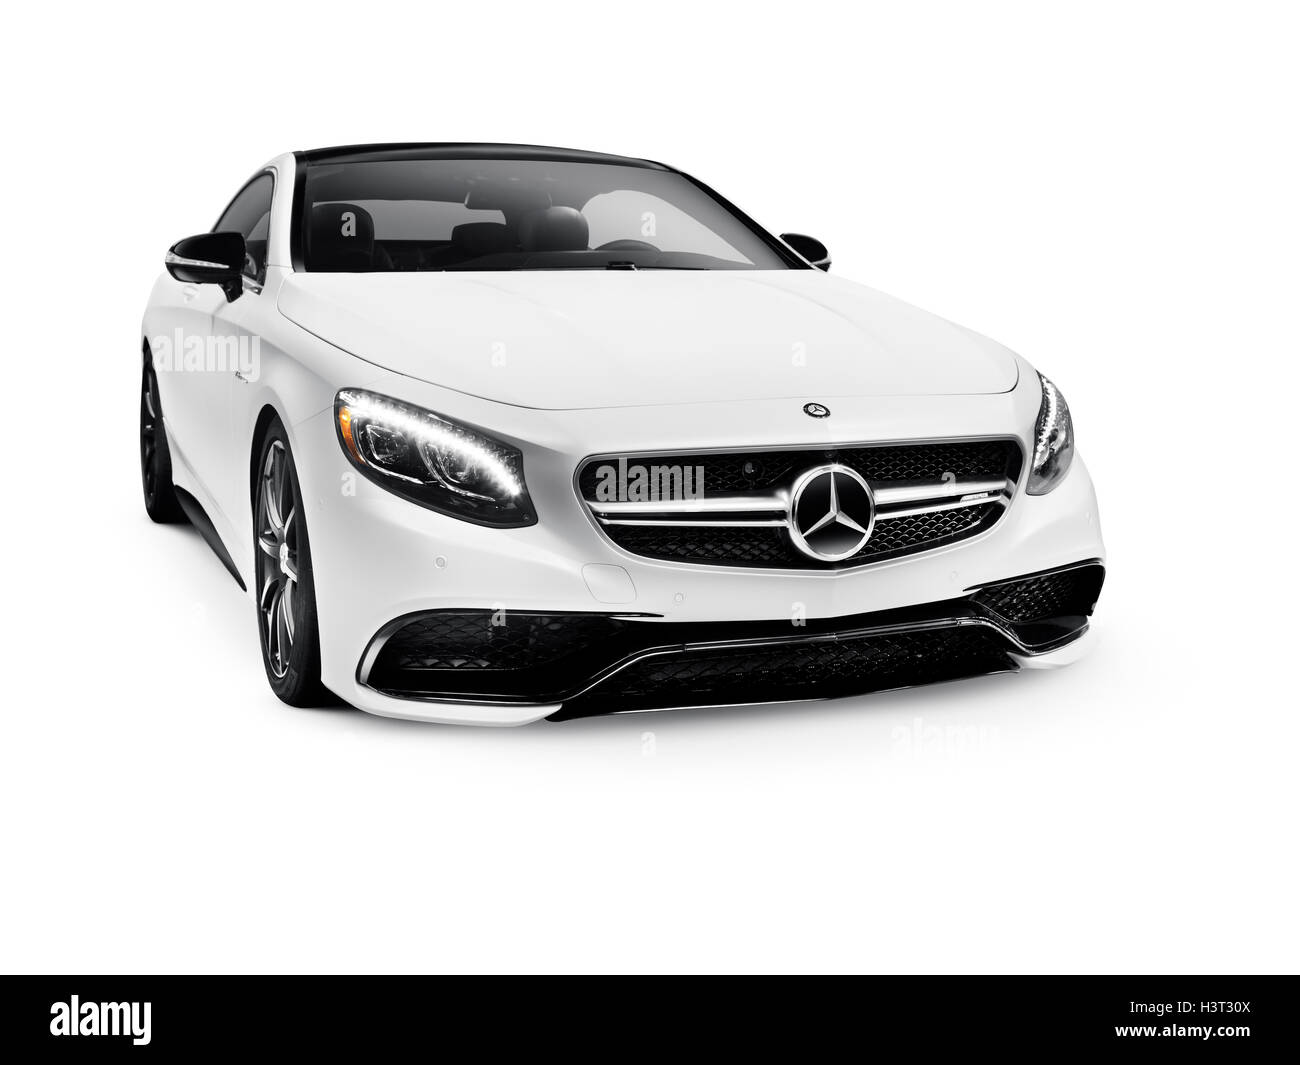 https://c8.alamy.com/comp/H3T30X/white-2015-mercedes-benz-s63-amg-coupe-luxury-car-isolated-on-white-H3T30X.jpg